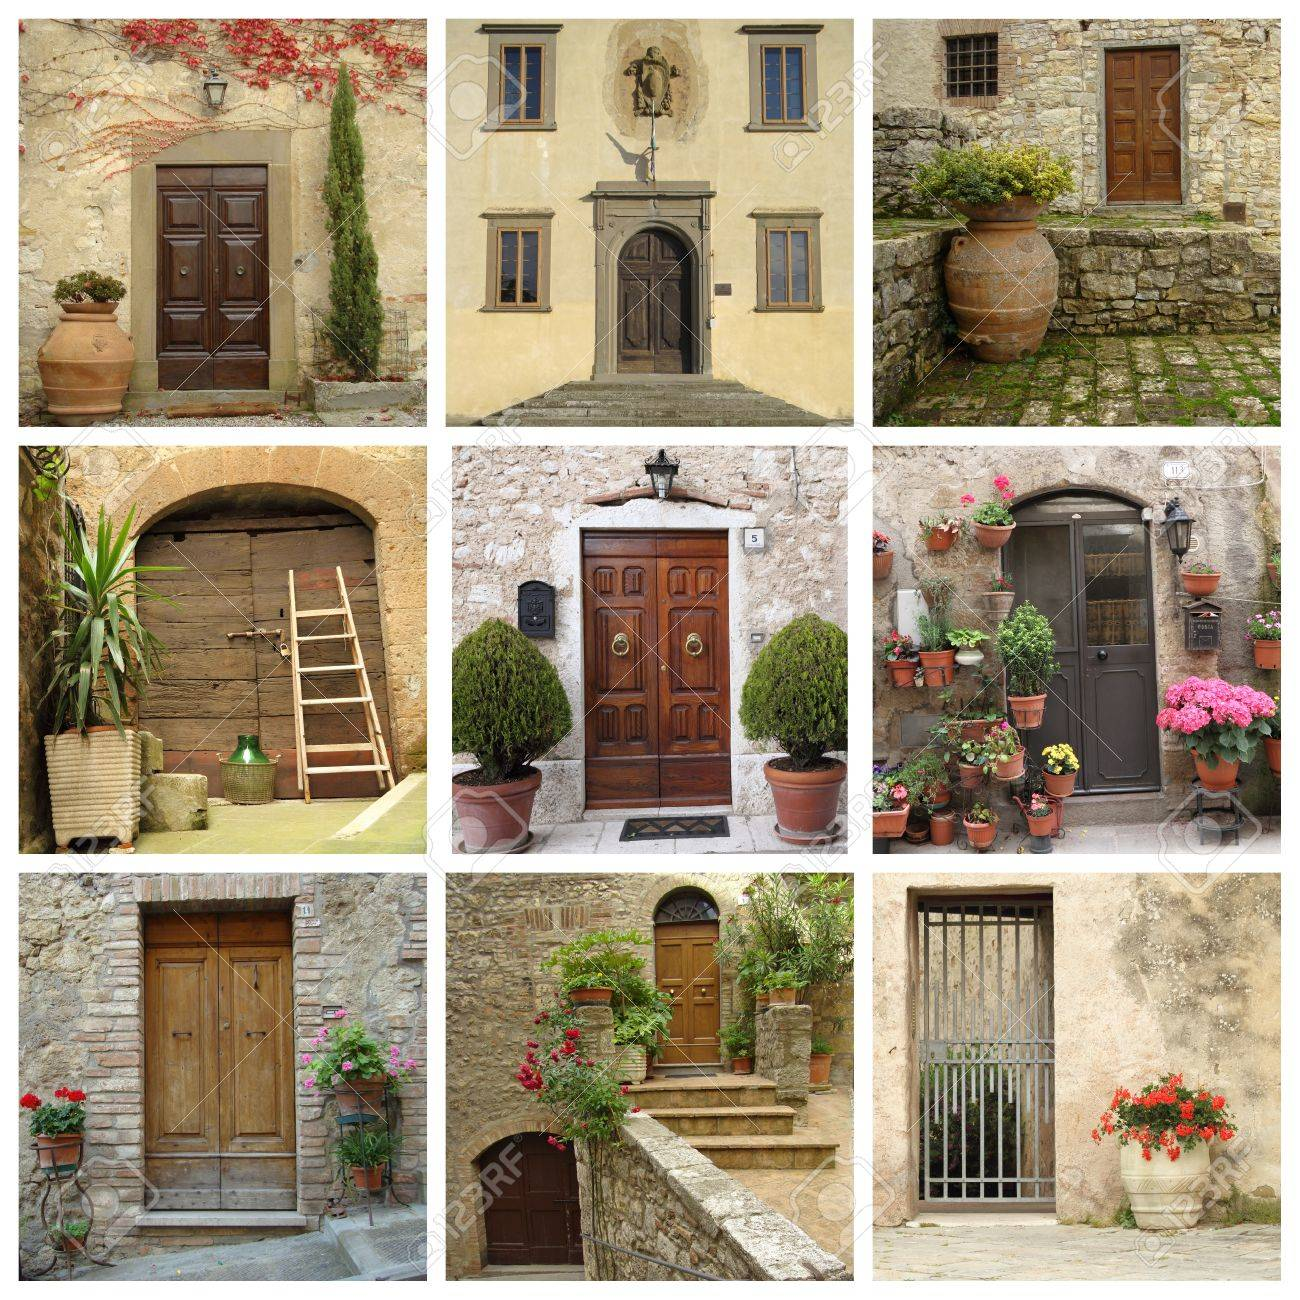 collage of front doors Tuscany Stock Photo - 8984371 & Collage Of Front Doors Tuscany Stock Photo Picture And Royalty ...